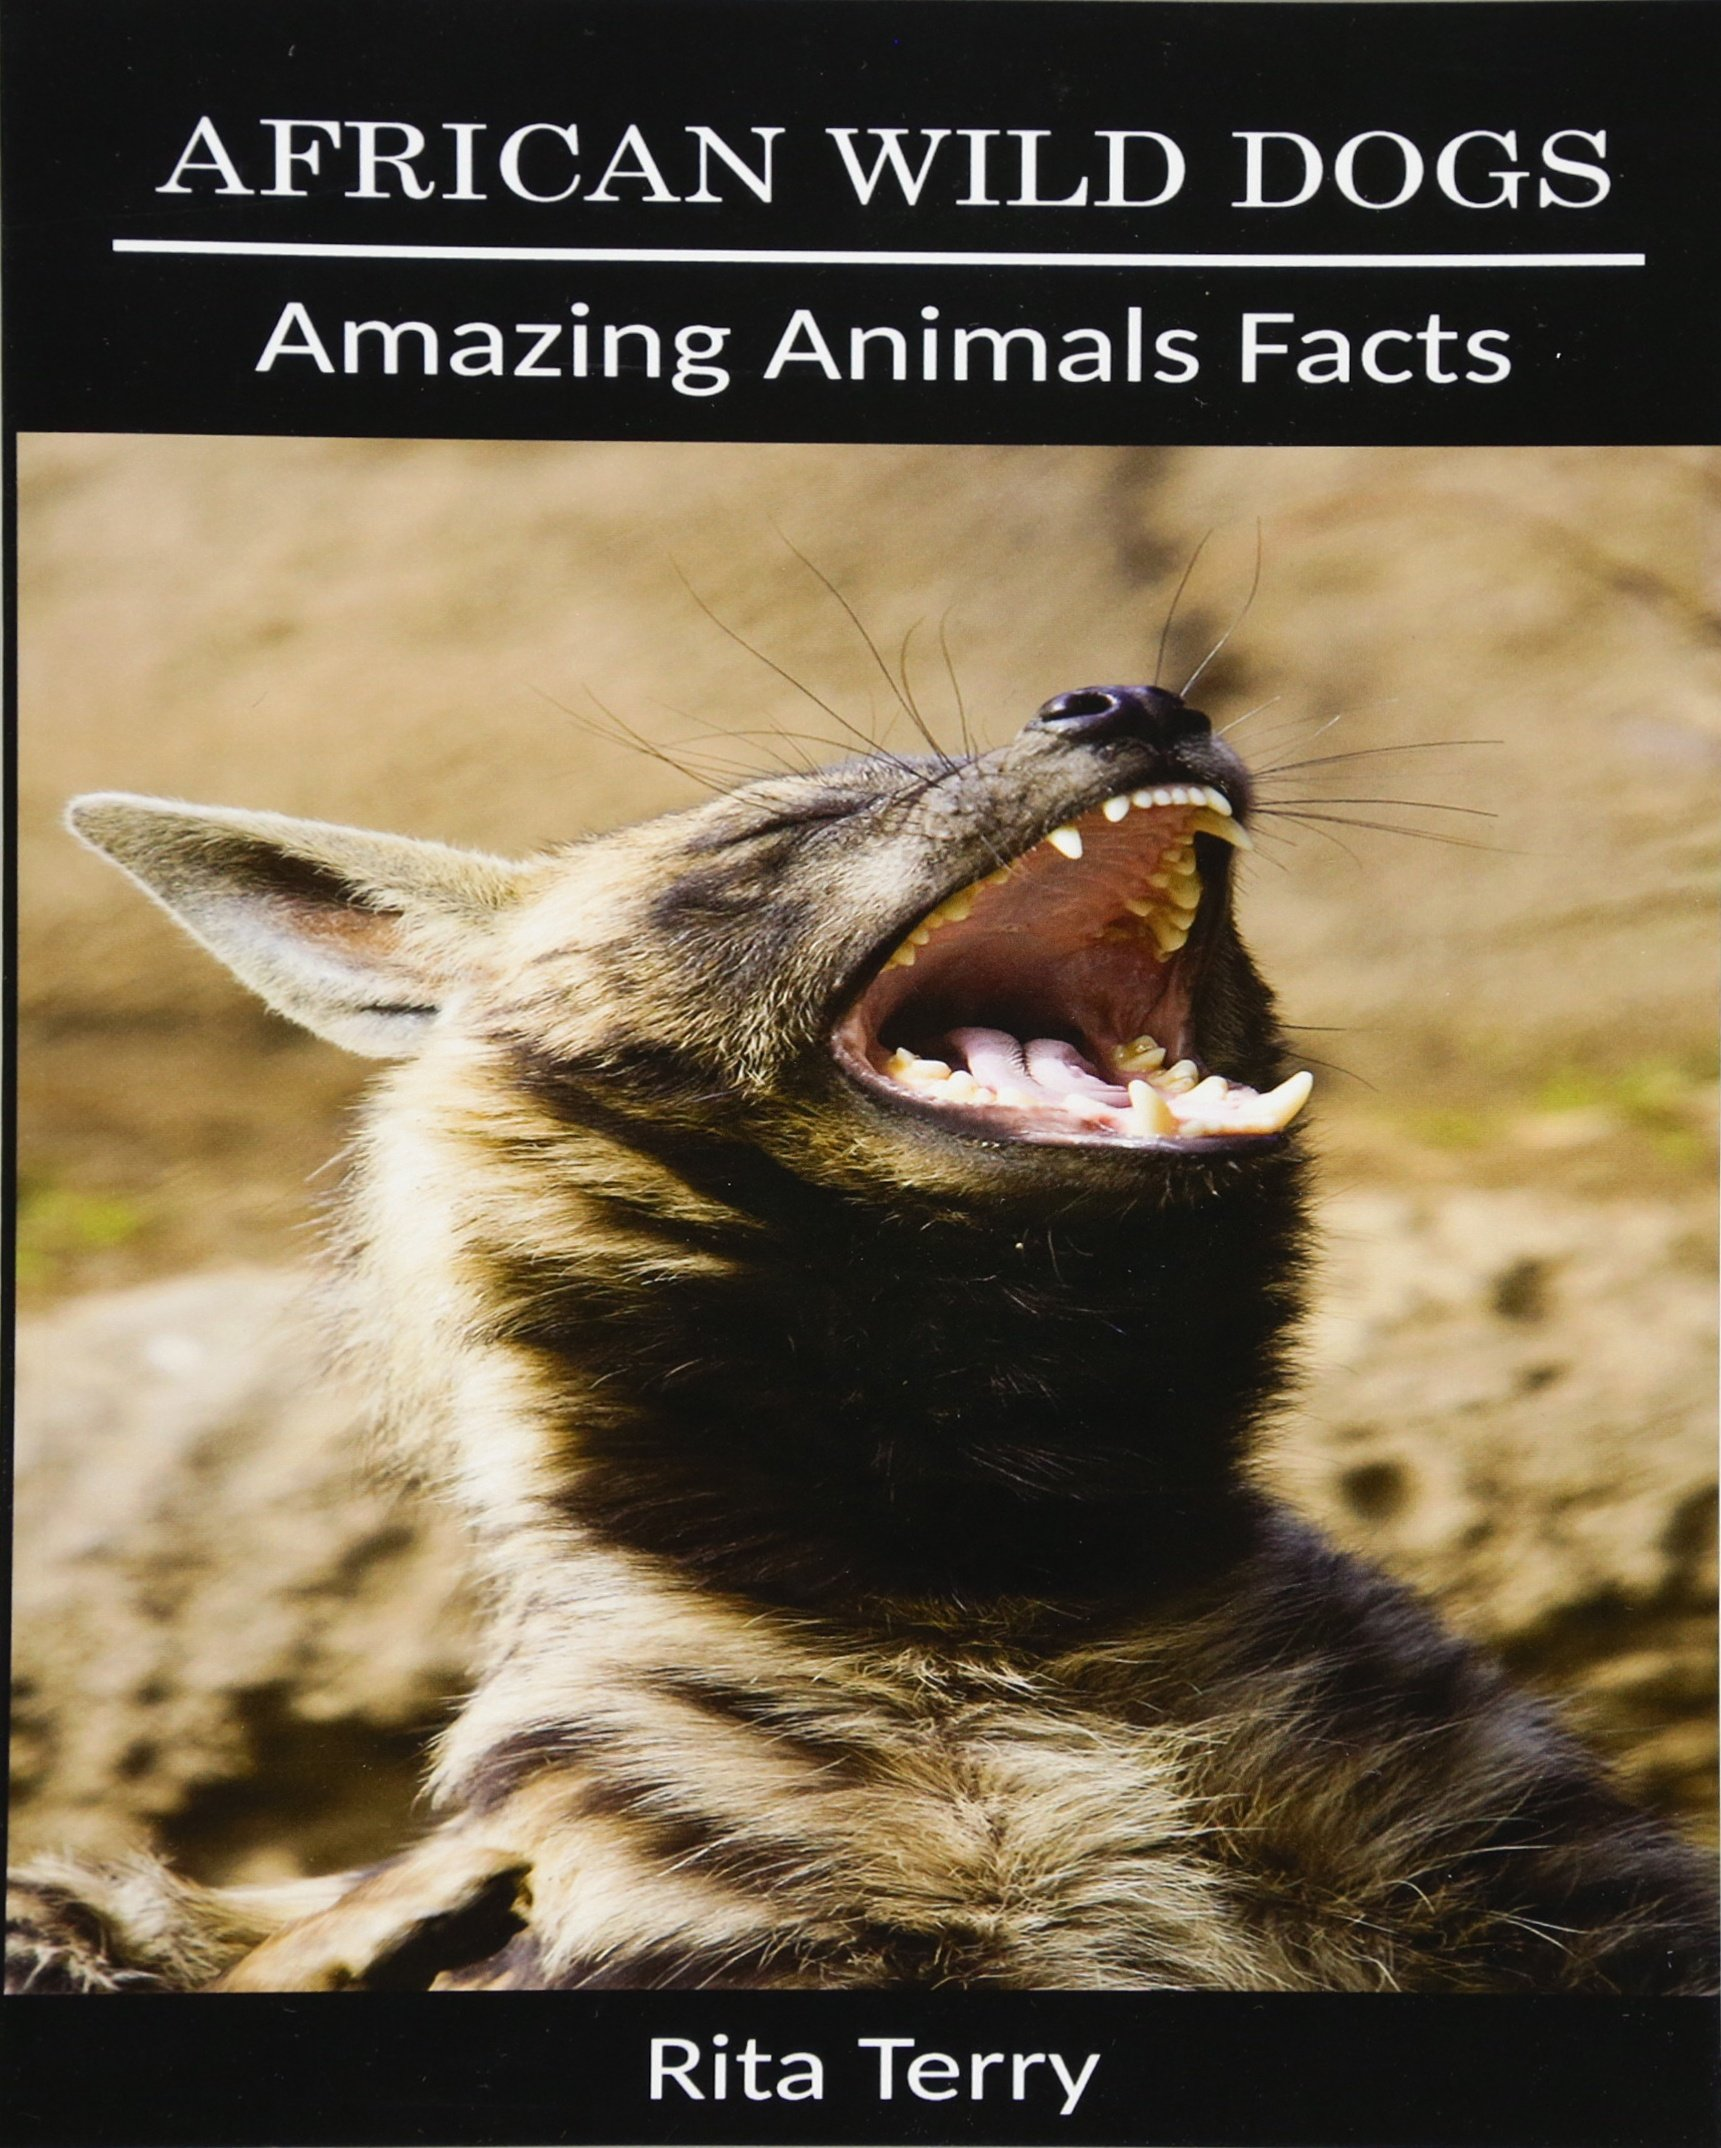 African Wild Dogs: Amazing Photos & Fun Facts Book About African Wild Dogs (Amazing Animals Facts) ebook